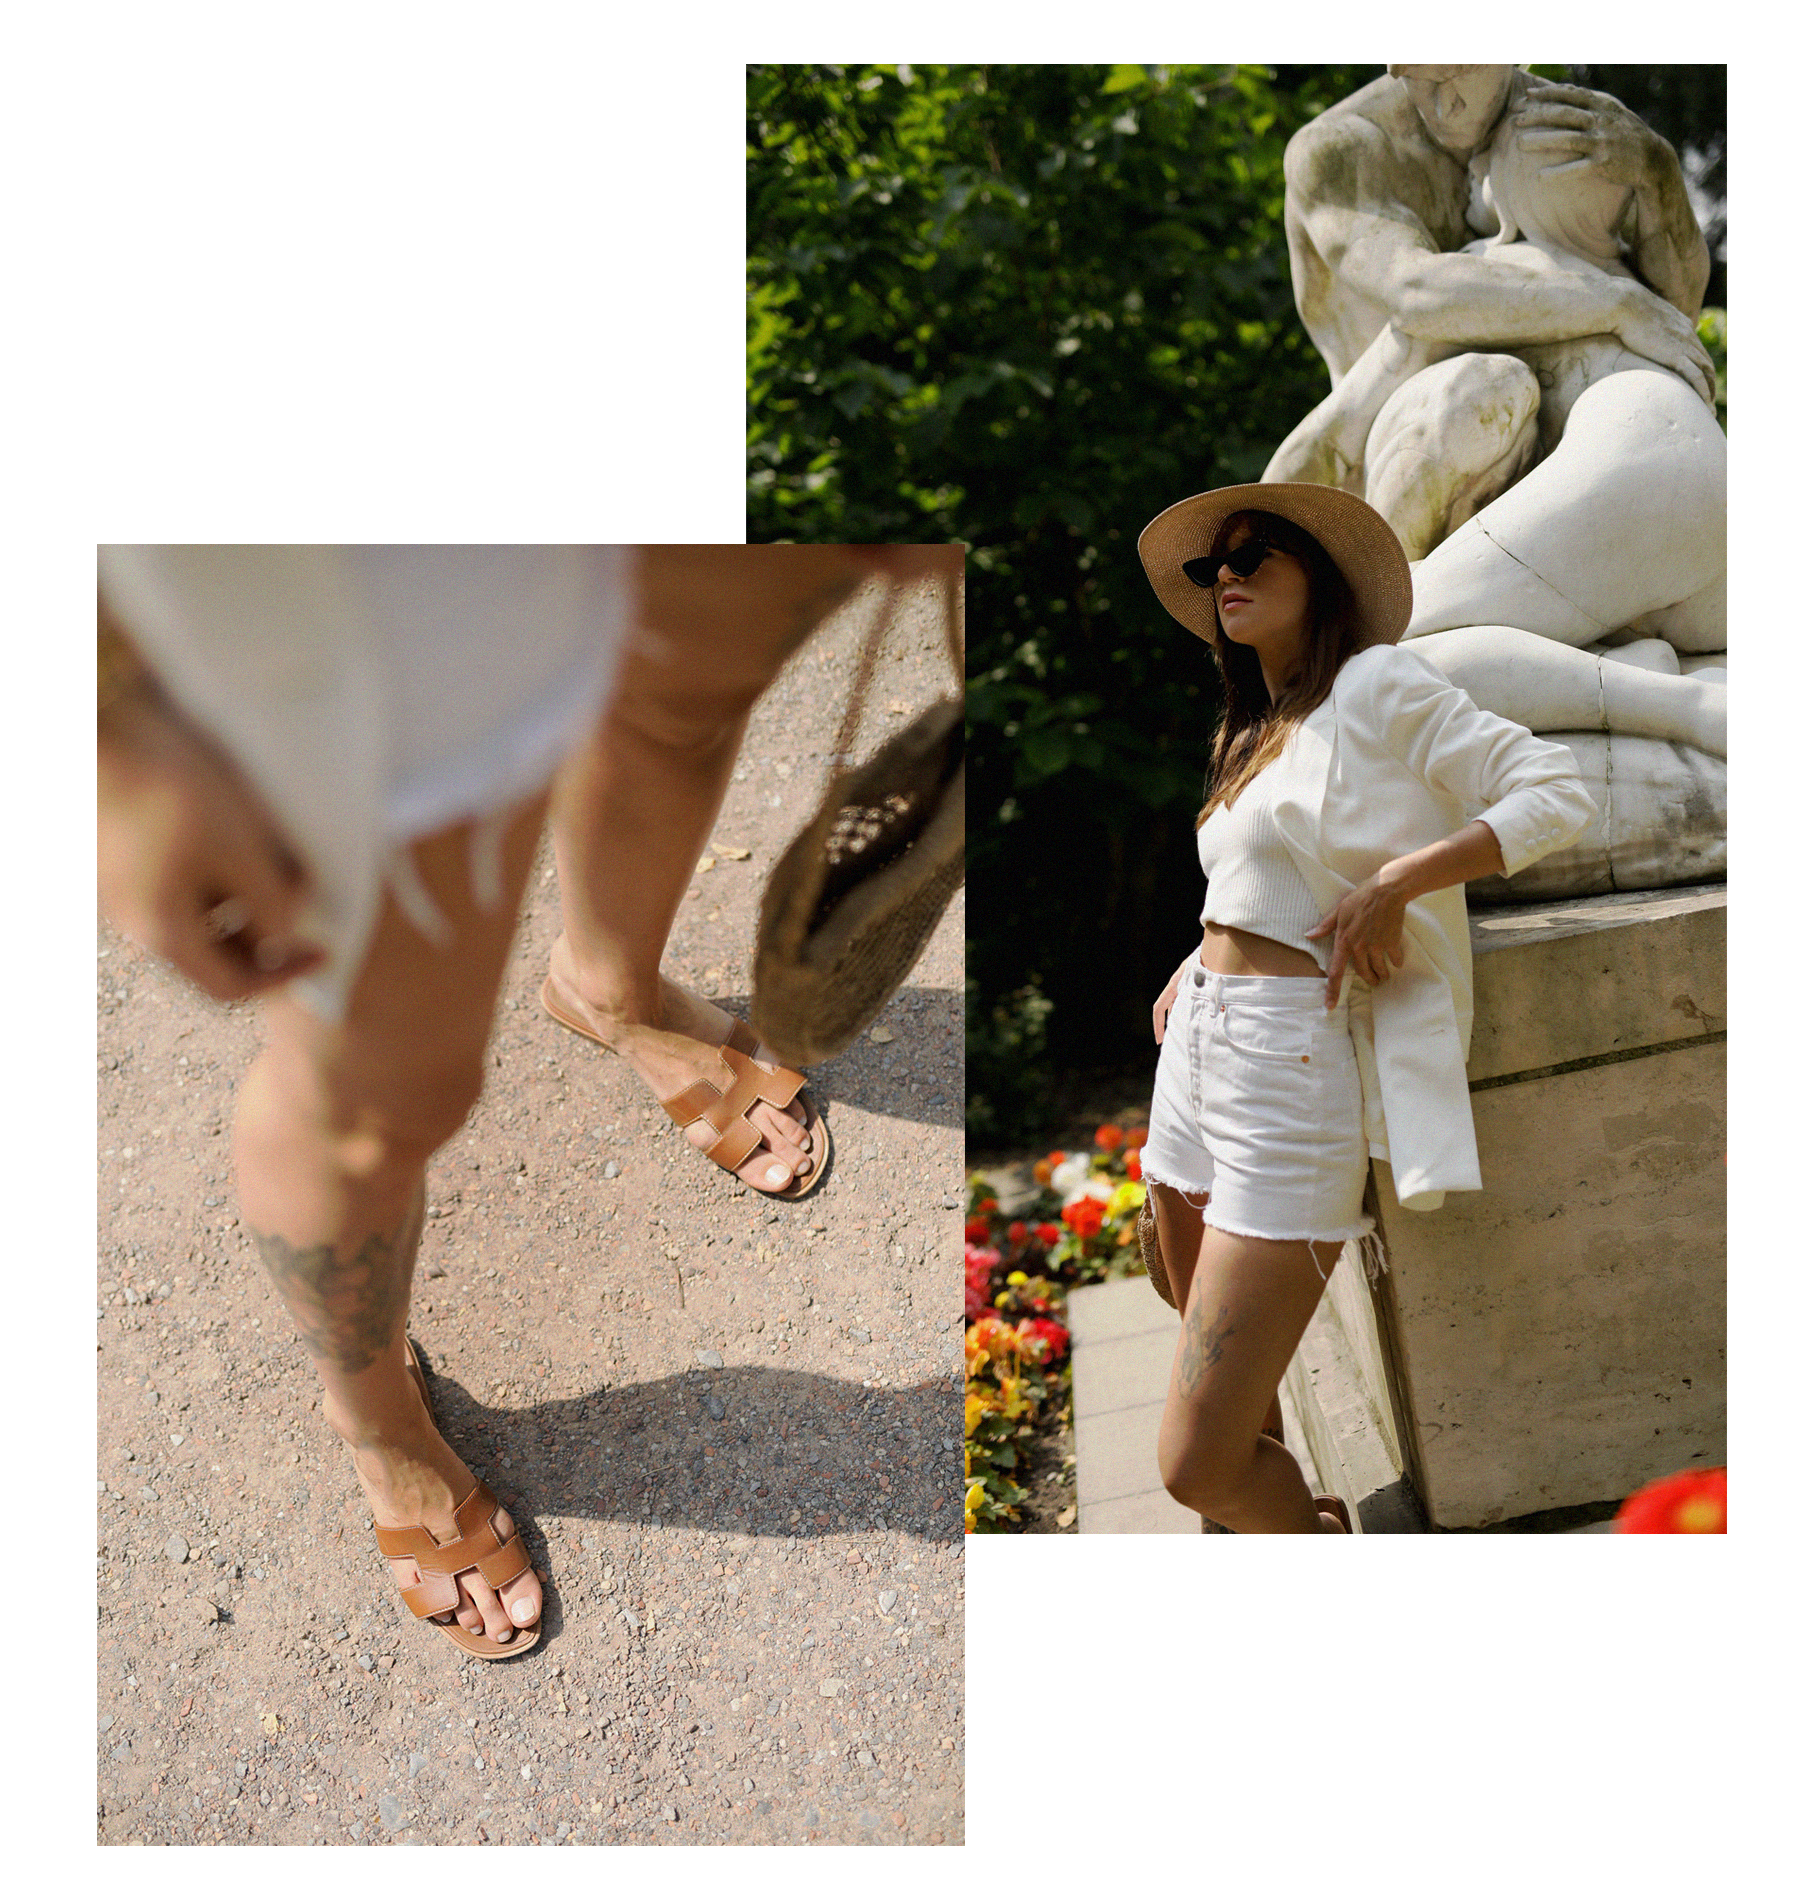 all white & other stories shorts blazer straw hat summer bag rouje hermes oran sandals statue marble dusseldorf düsseldorf dus art artist artsy fashionblogger modeblog jane birkin jeanne damas outfit mode inspiration look seventies ricarda schernus 3